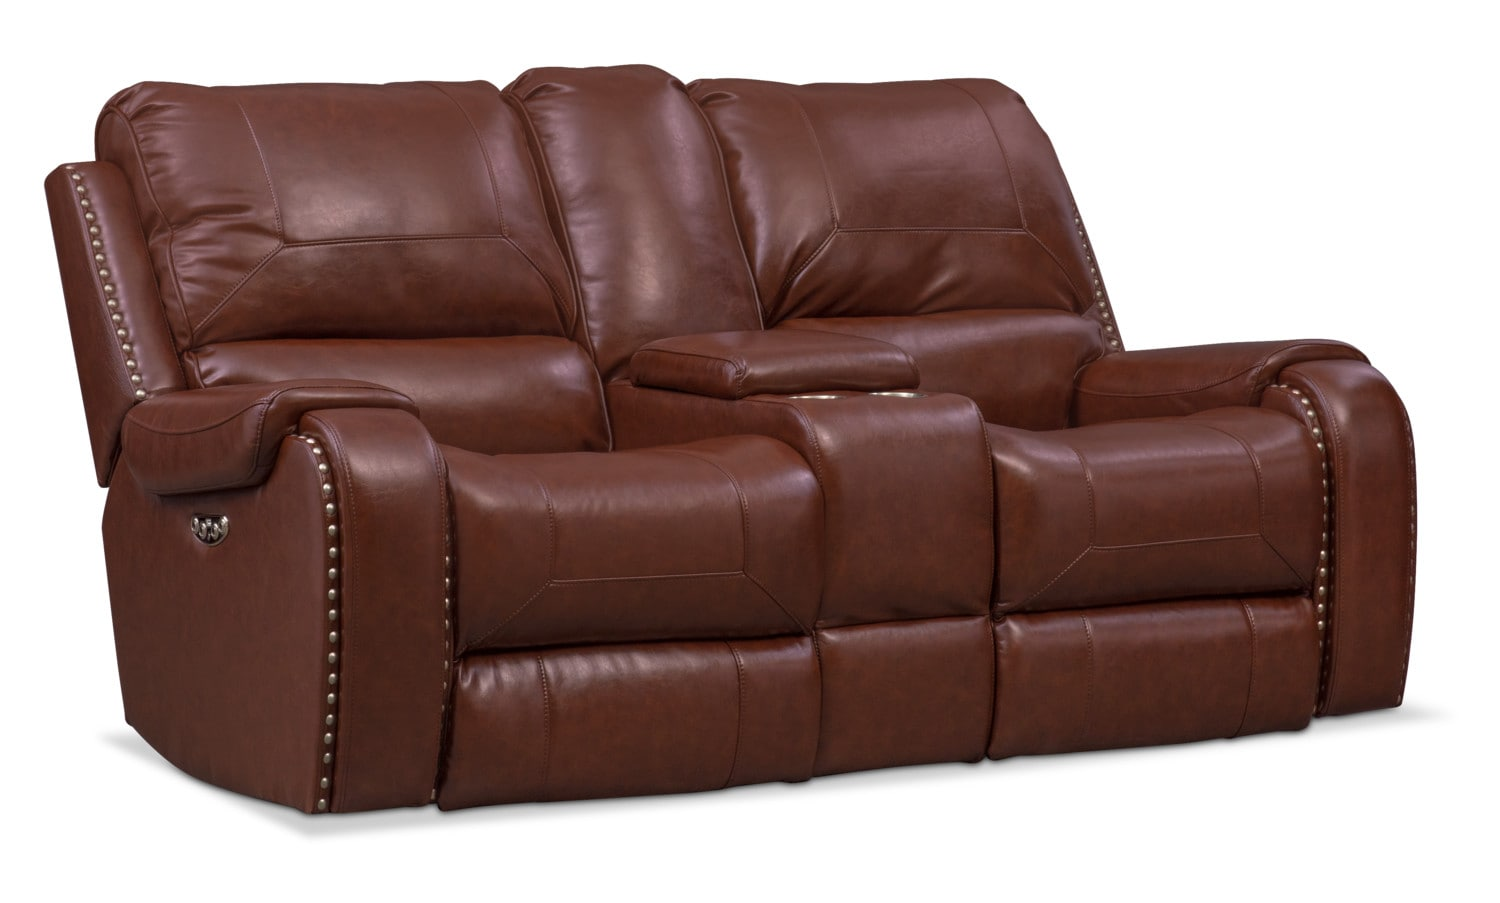 Living Room Furniture - Austin Dual Power Reclining Loveseat